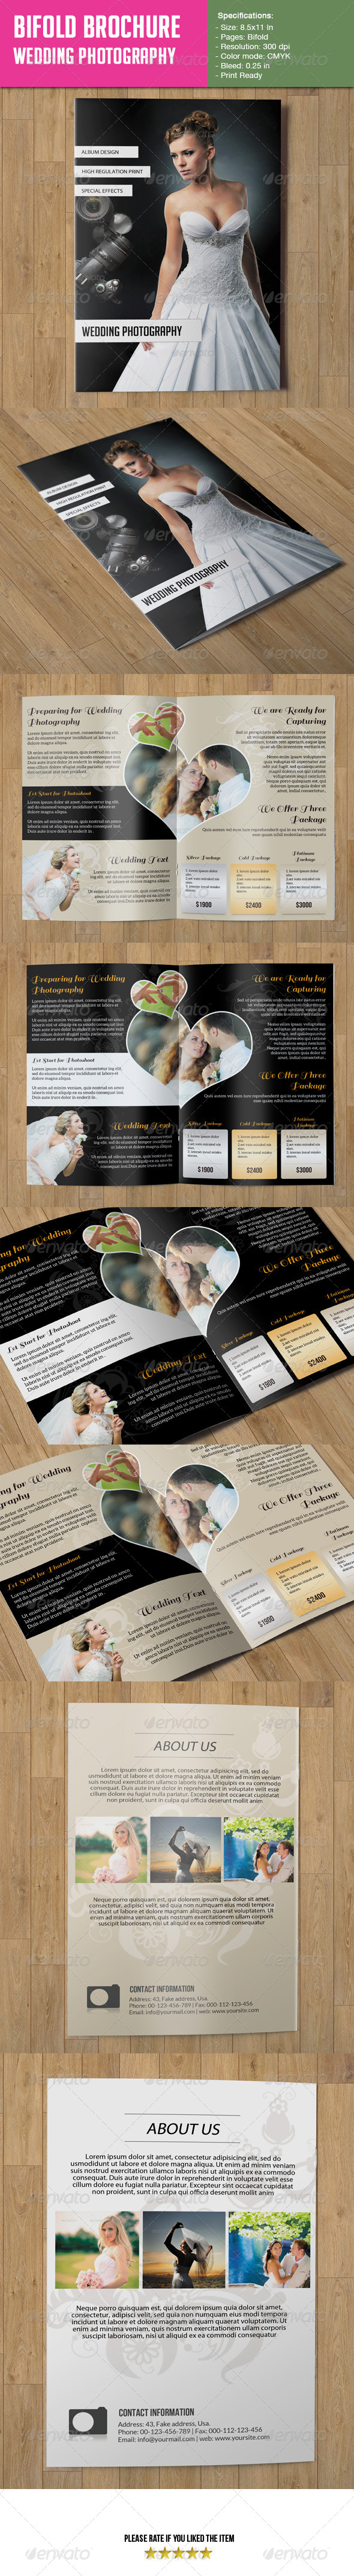 GraphicRiver Bifold Brochure- Wedding Photography 6625634